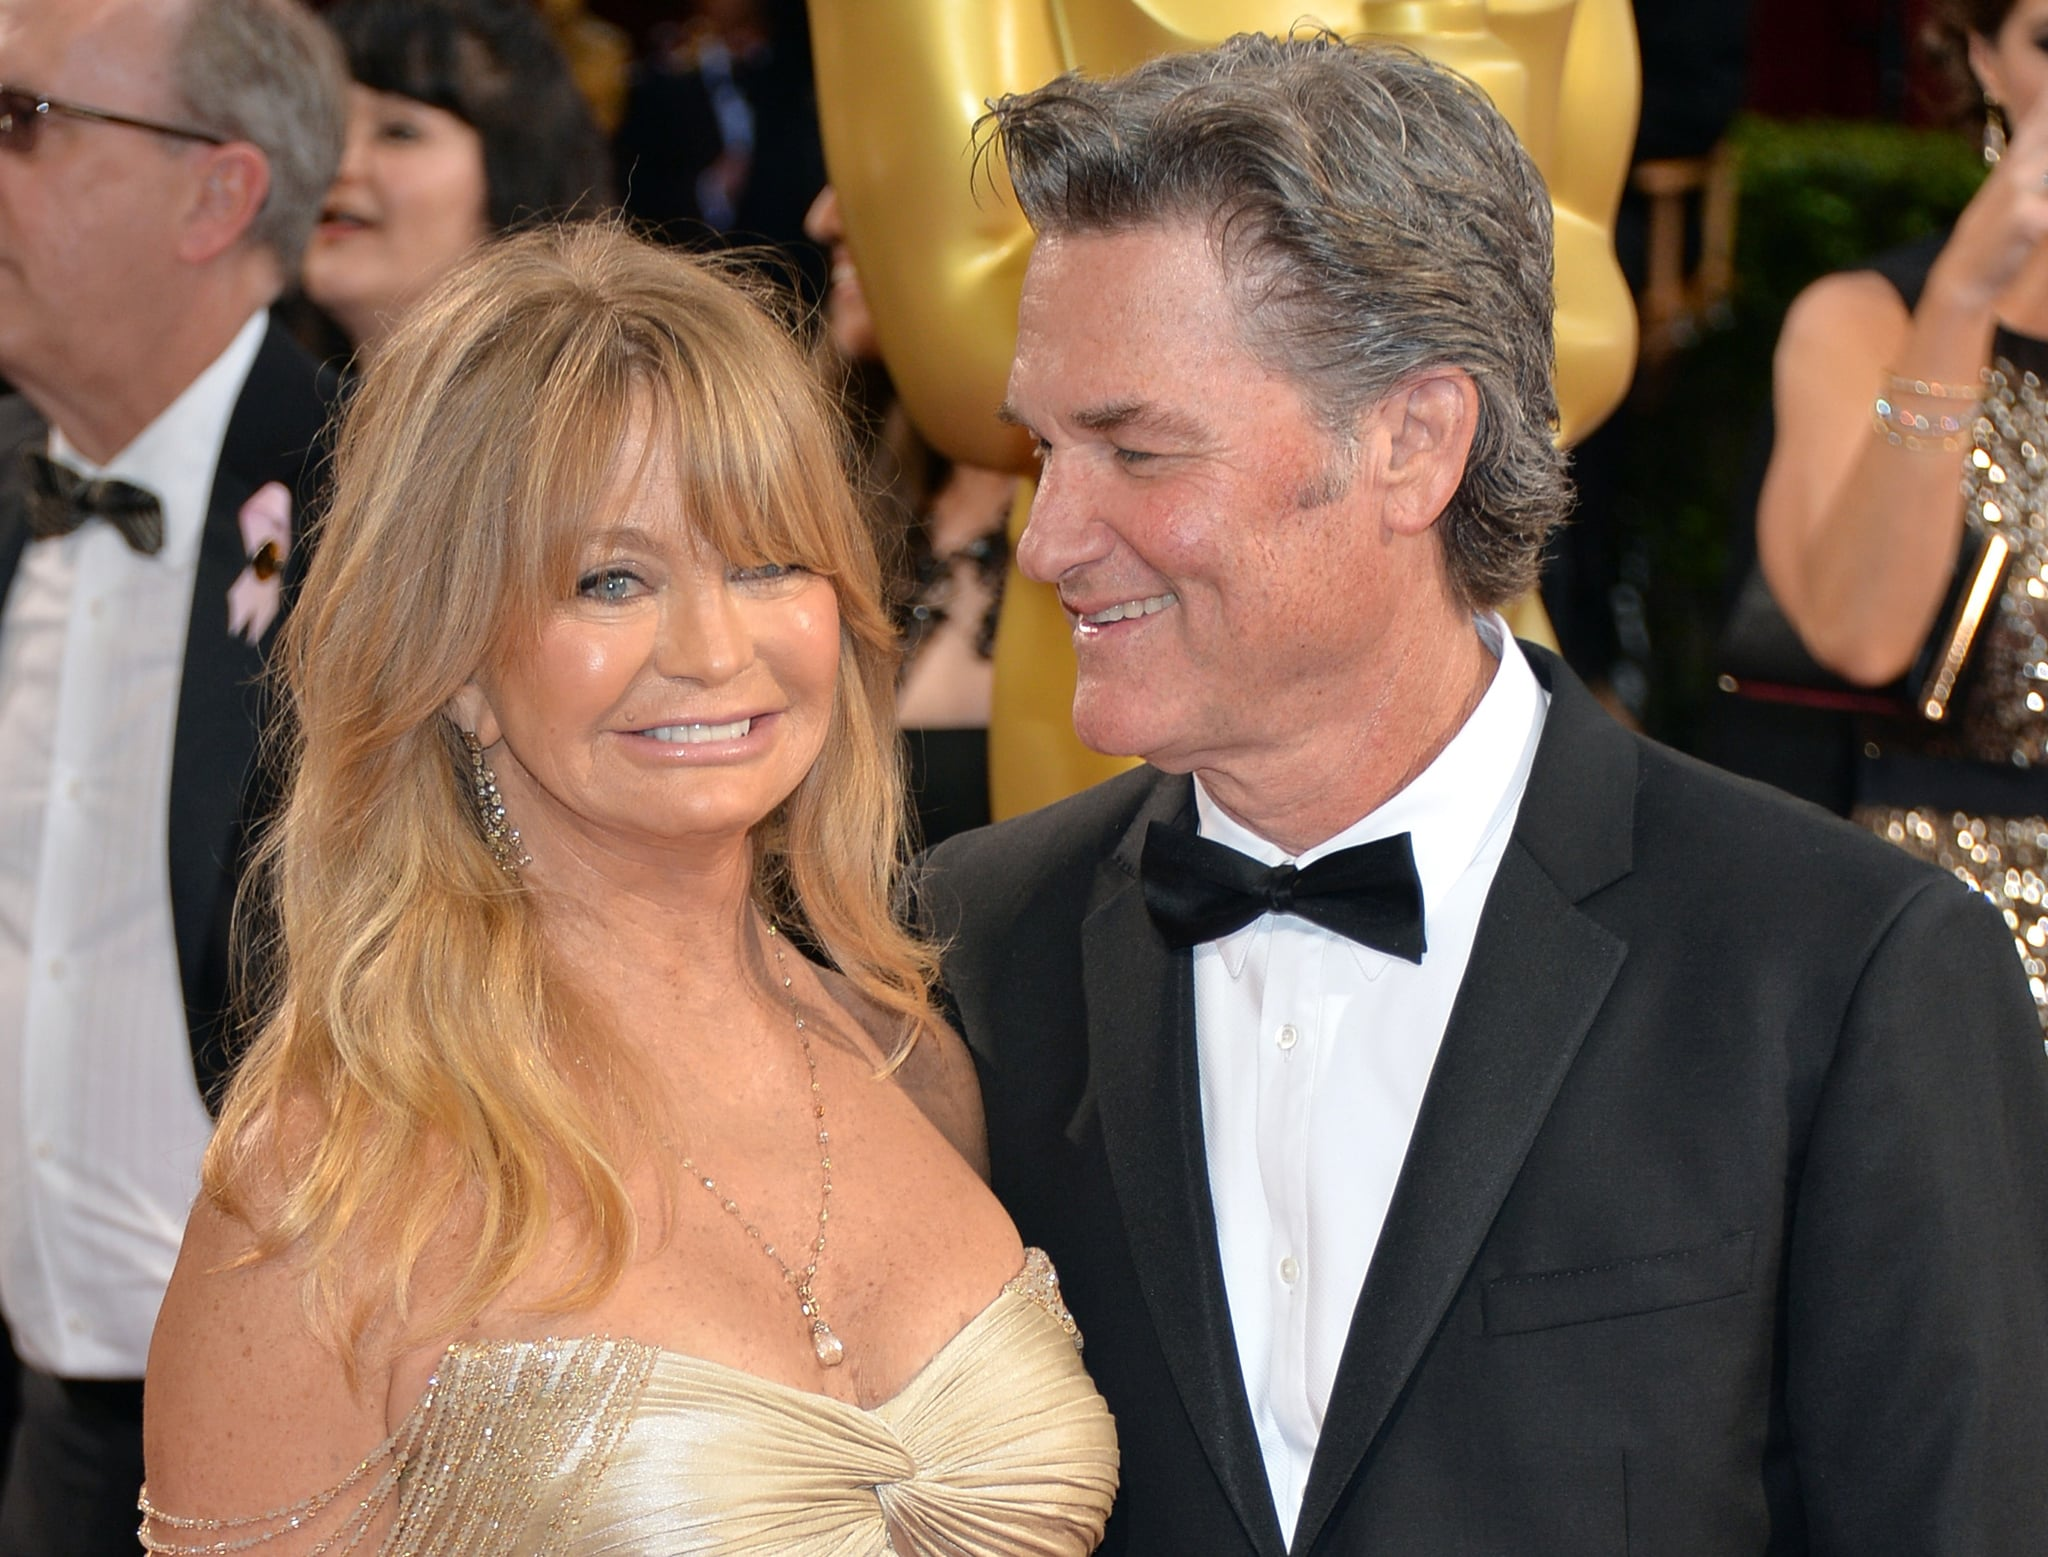 Kurt Russell And Goldie Hawn Watching Overboard Movie Popsugar Celebrity